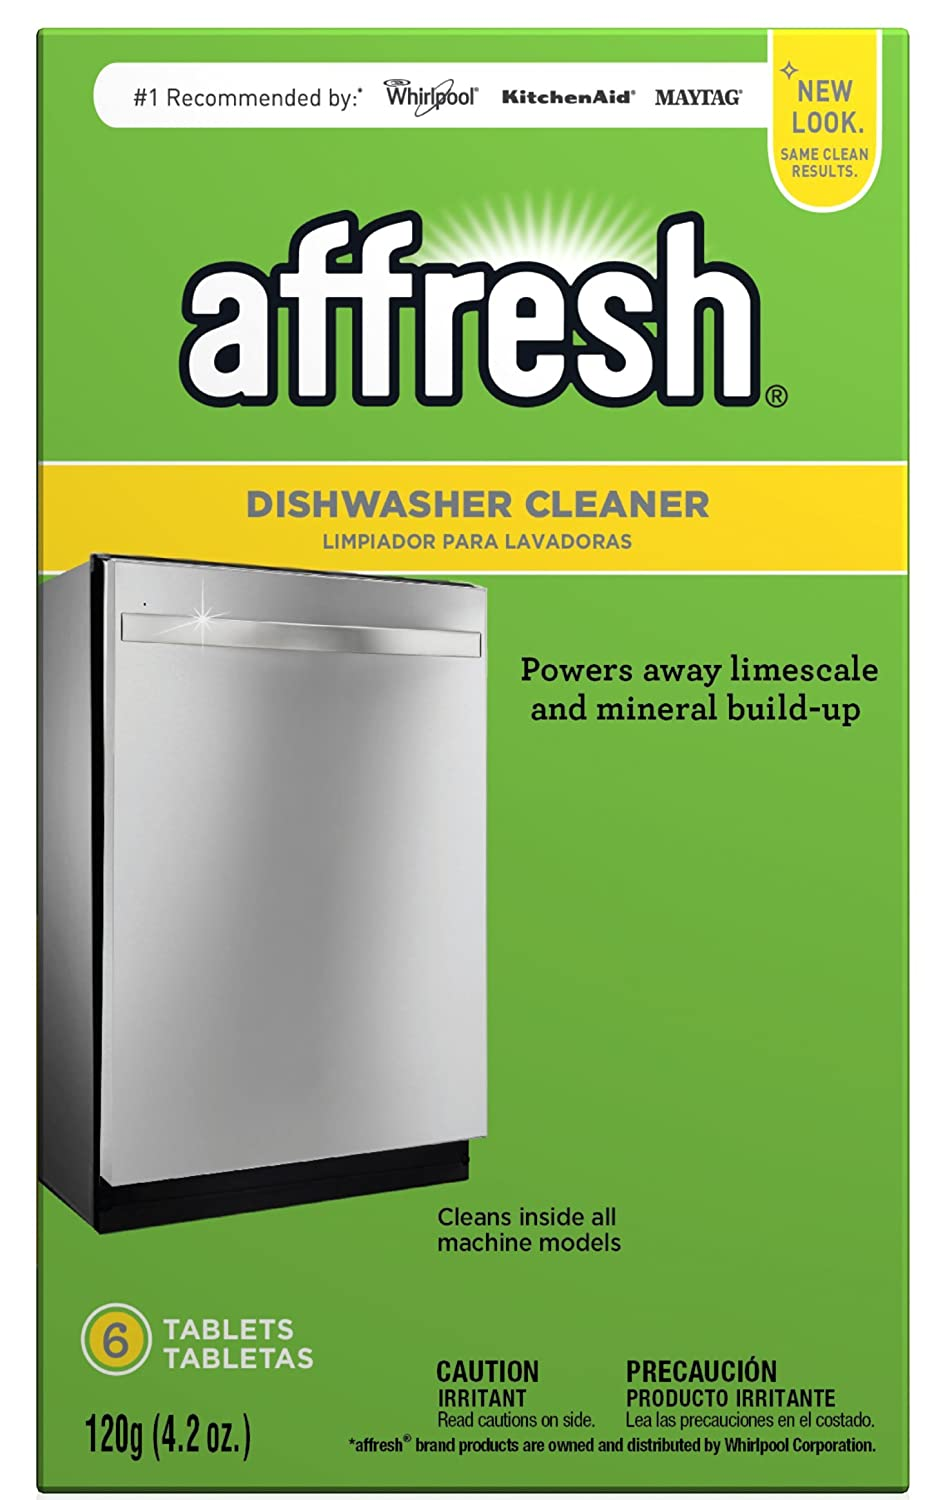 Affresh W10549851 Dishwasher Cleaner 6 Tablets in Carton Original Version, pack of 1